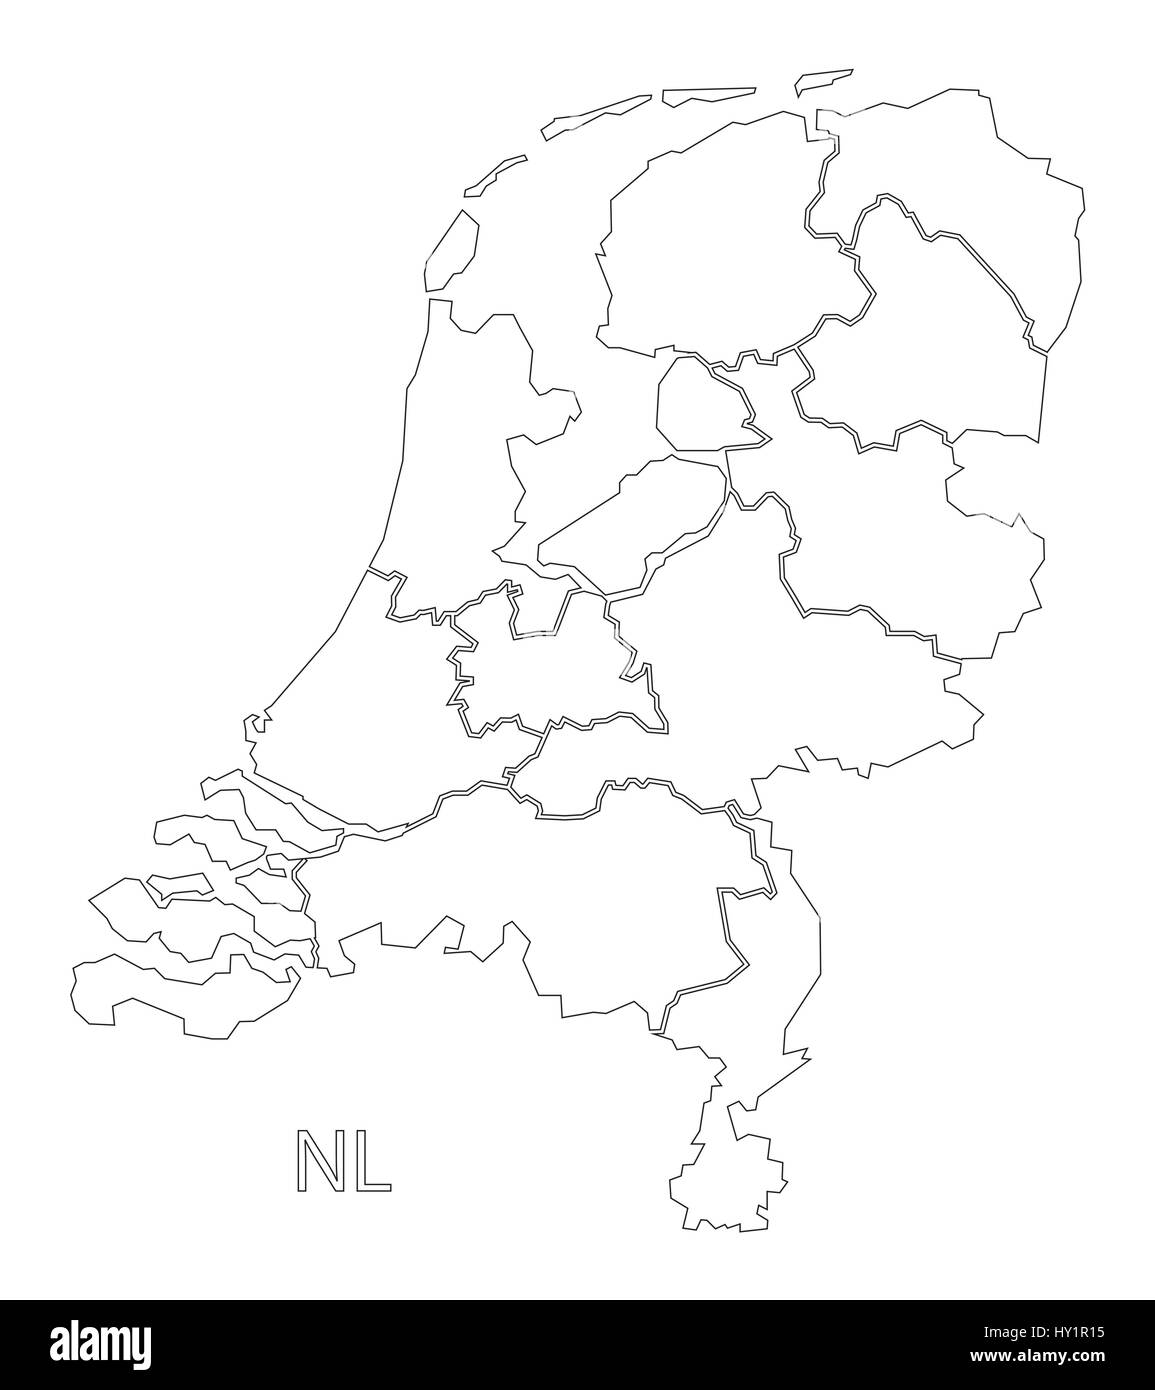 Netherlands outline silhouette map illustration with provinces